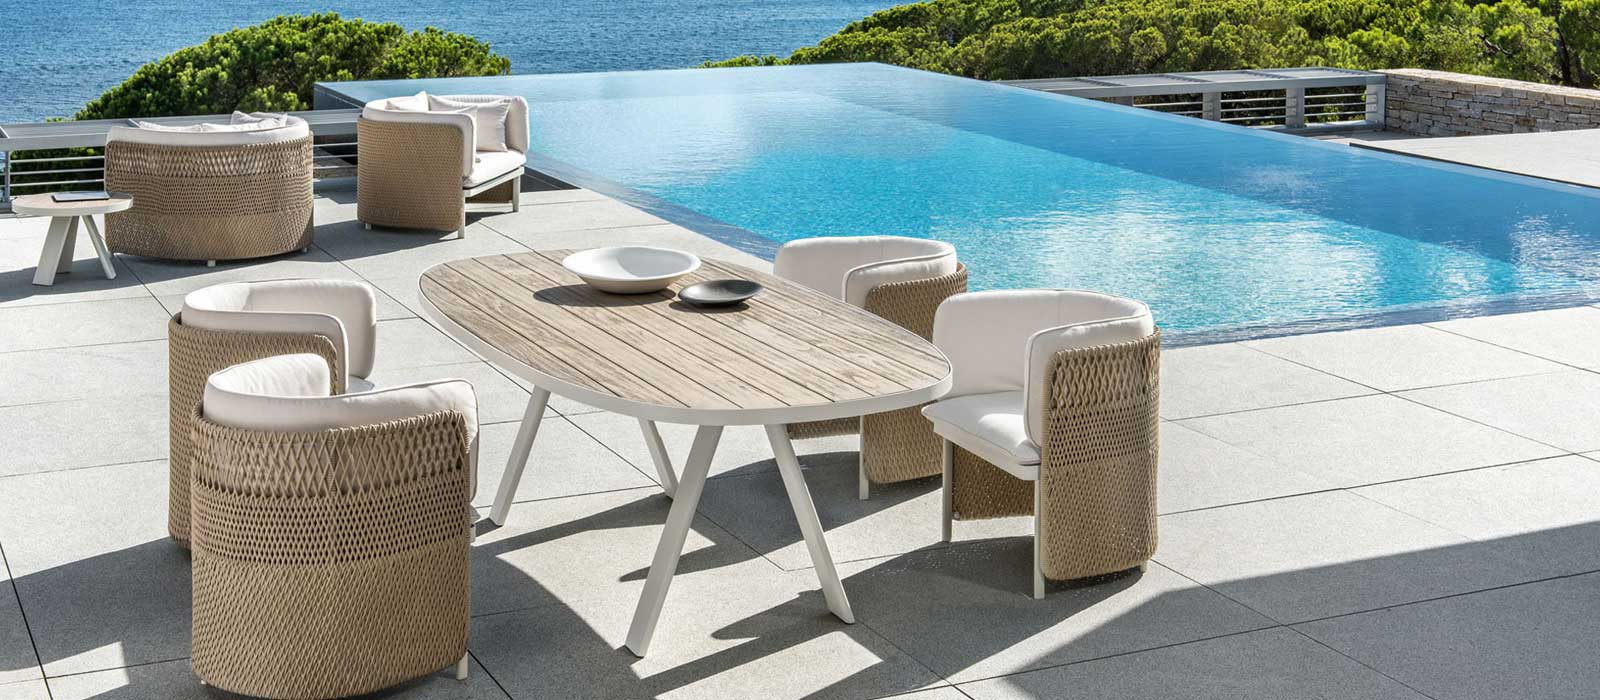 Poolside Furniture Manufacturers in Jaislmer